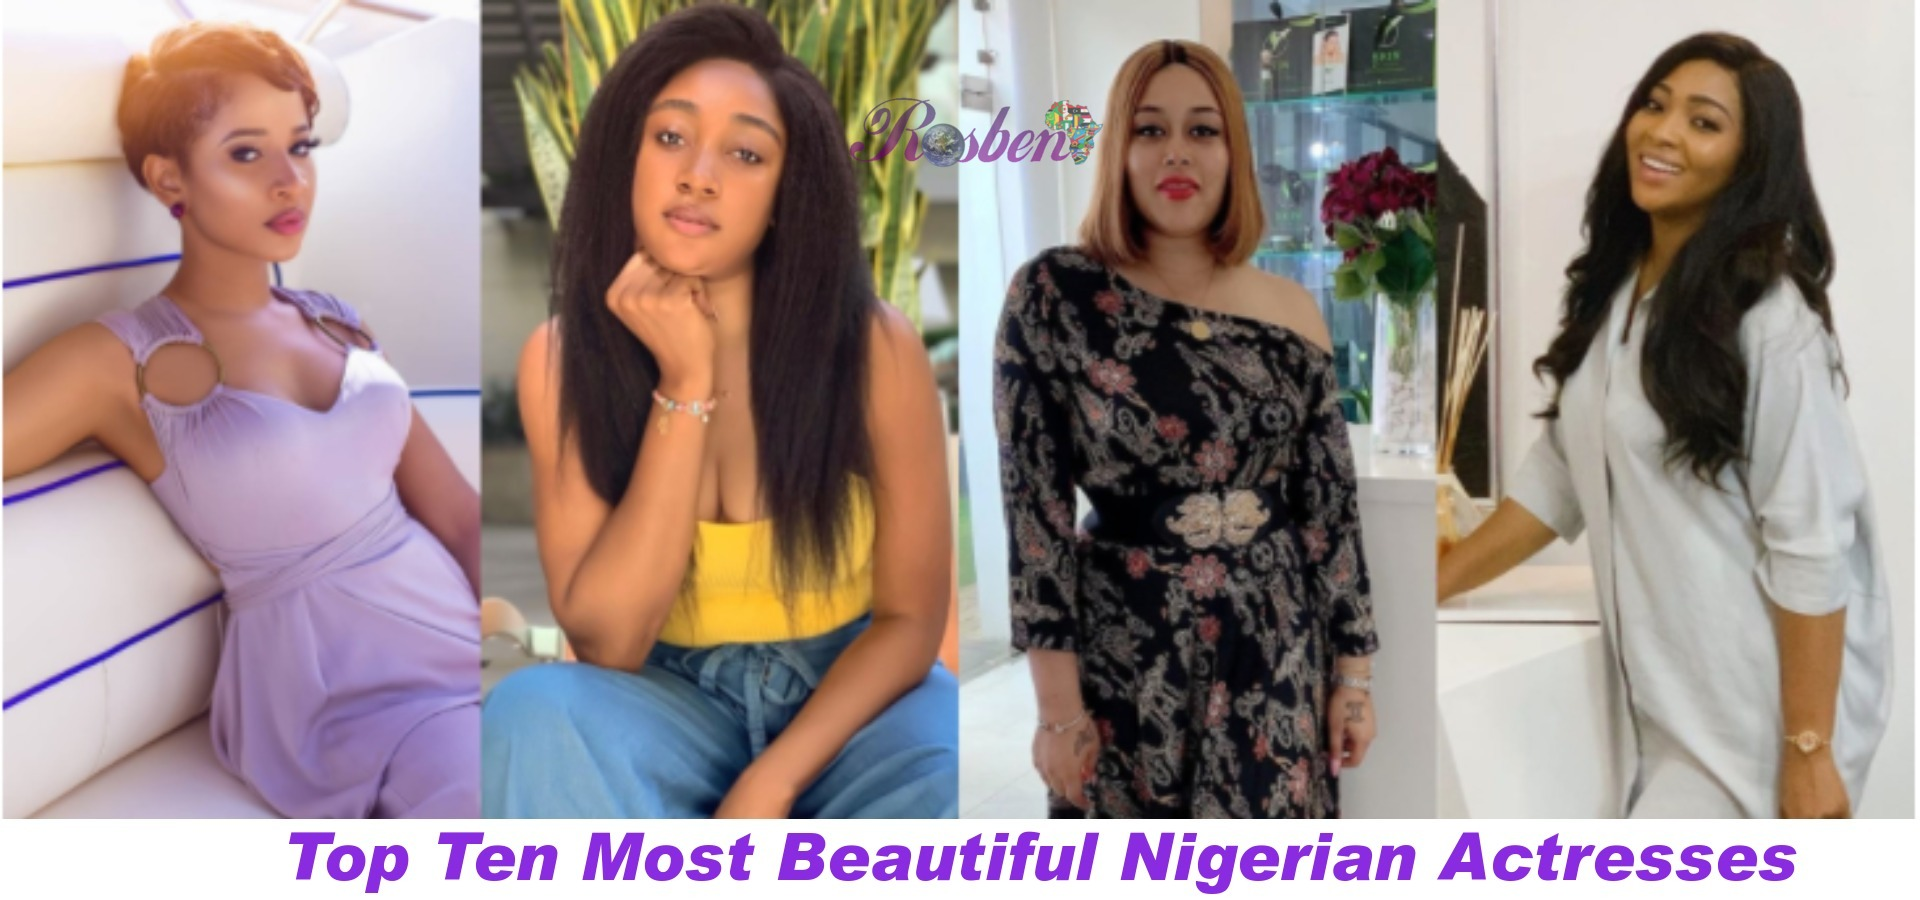 Top Ten Most Beautiful Nigerian Actresses 2020 2